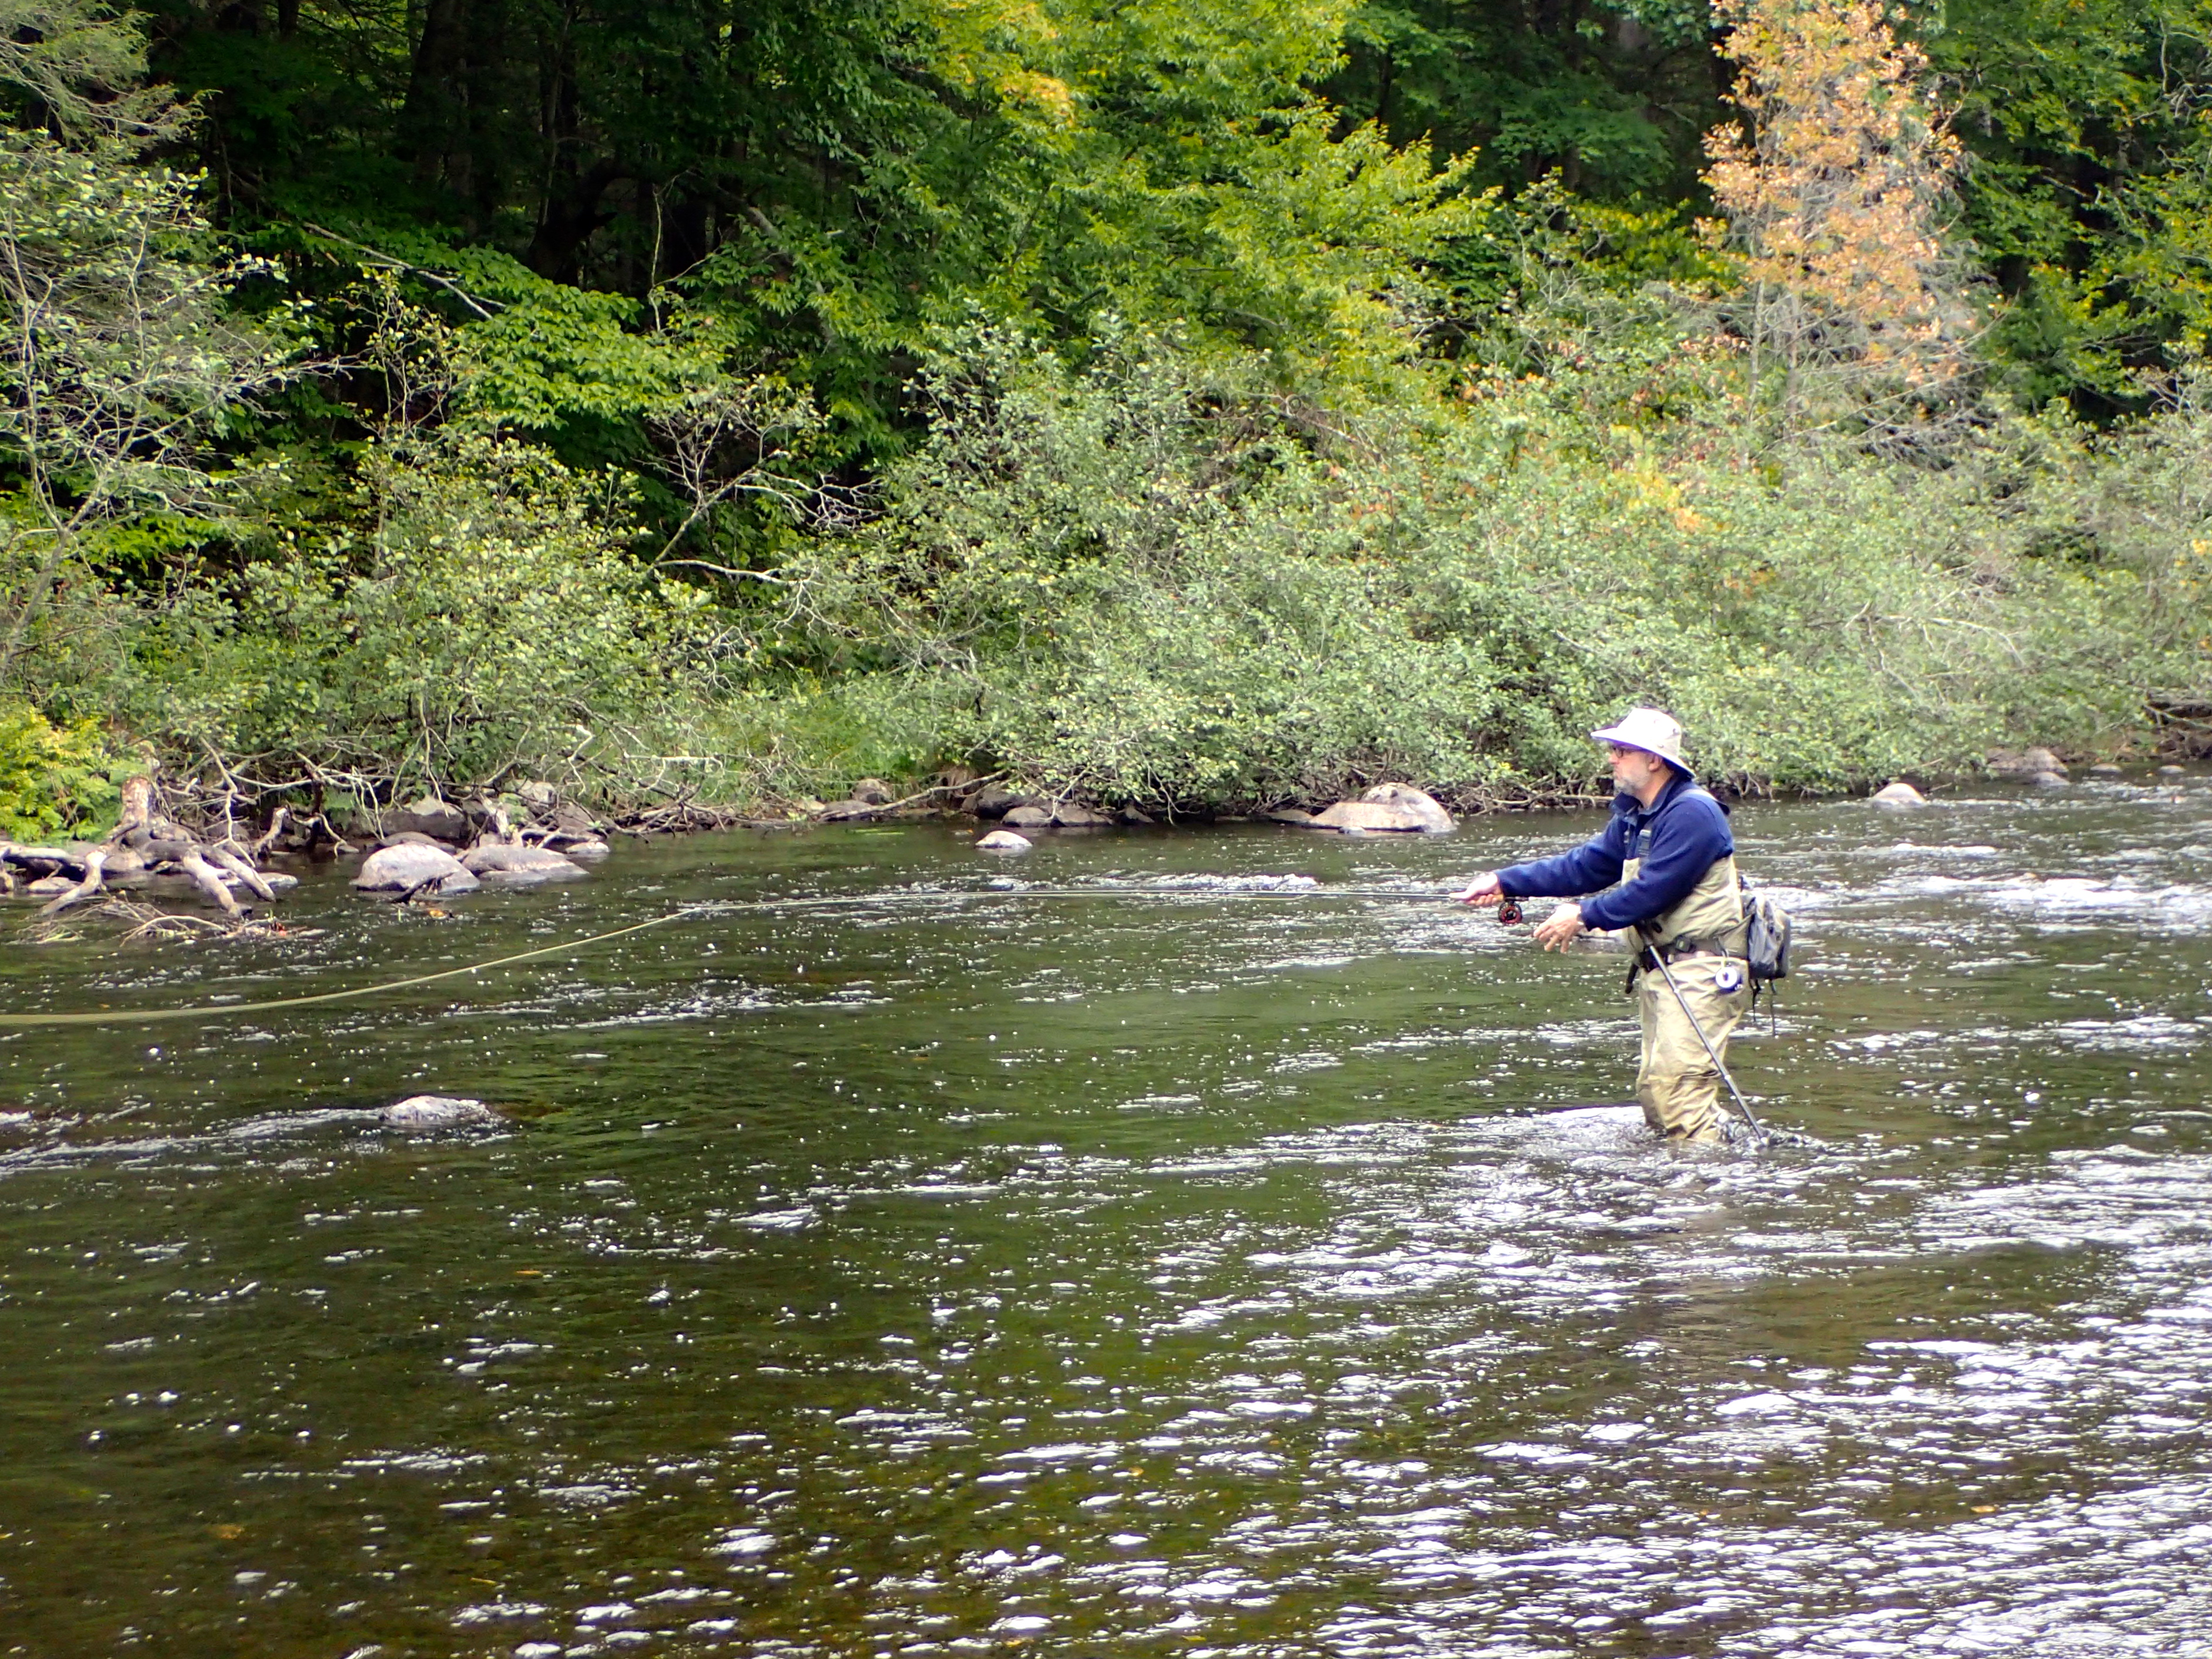 Soft hackled fly currentseams page 2 for Farmington river fishing